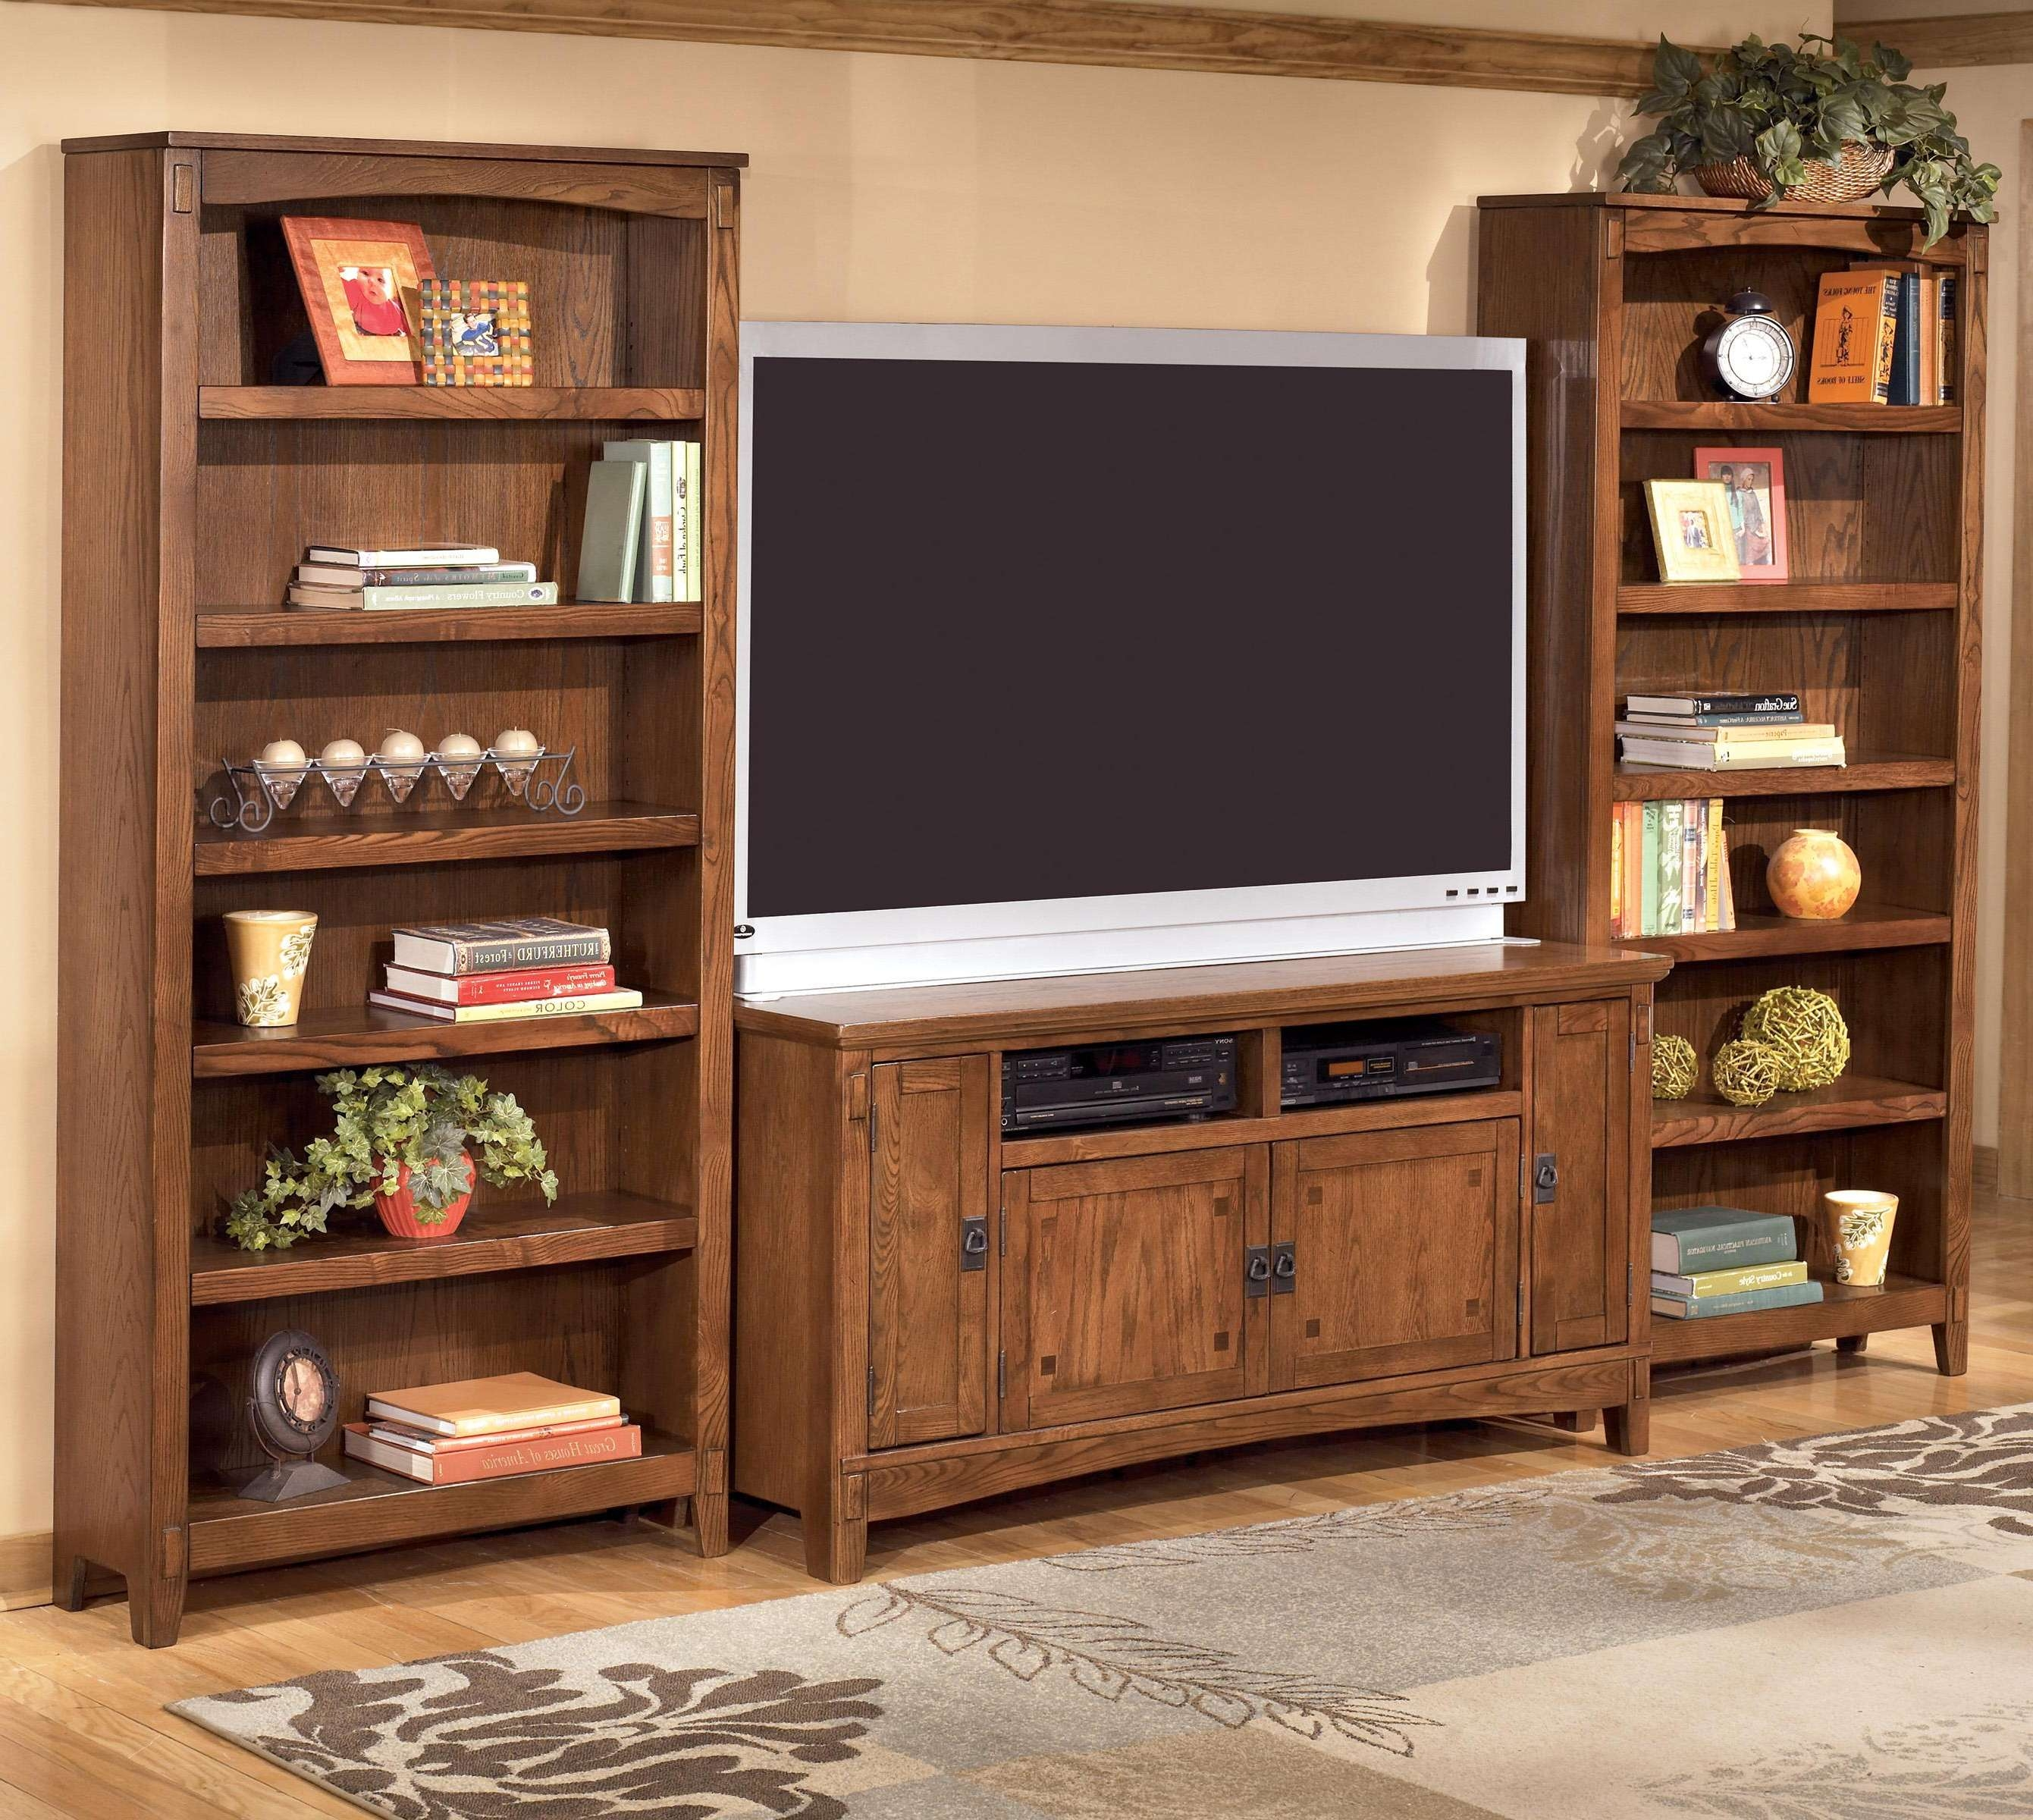 Wall Units: Amazing Tv Cabinet And Bookcase Tv Cabinet With Doors Within Bookshelf And Tv Stands (View 12 of 15)